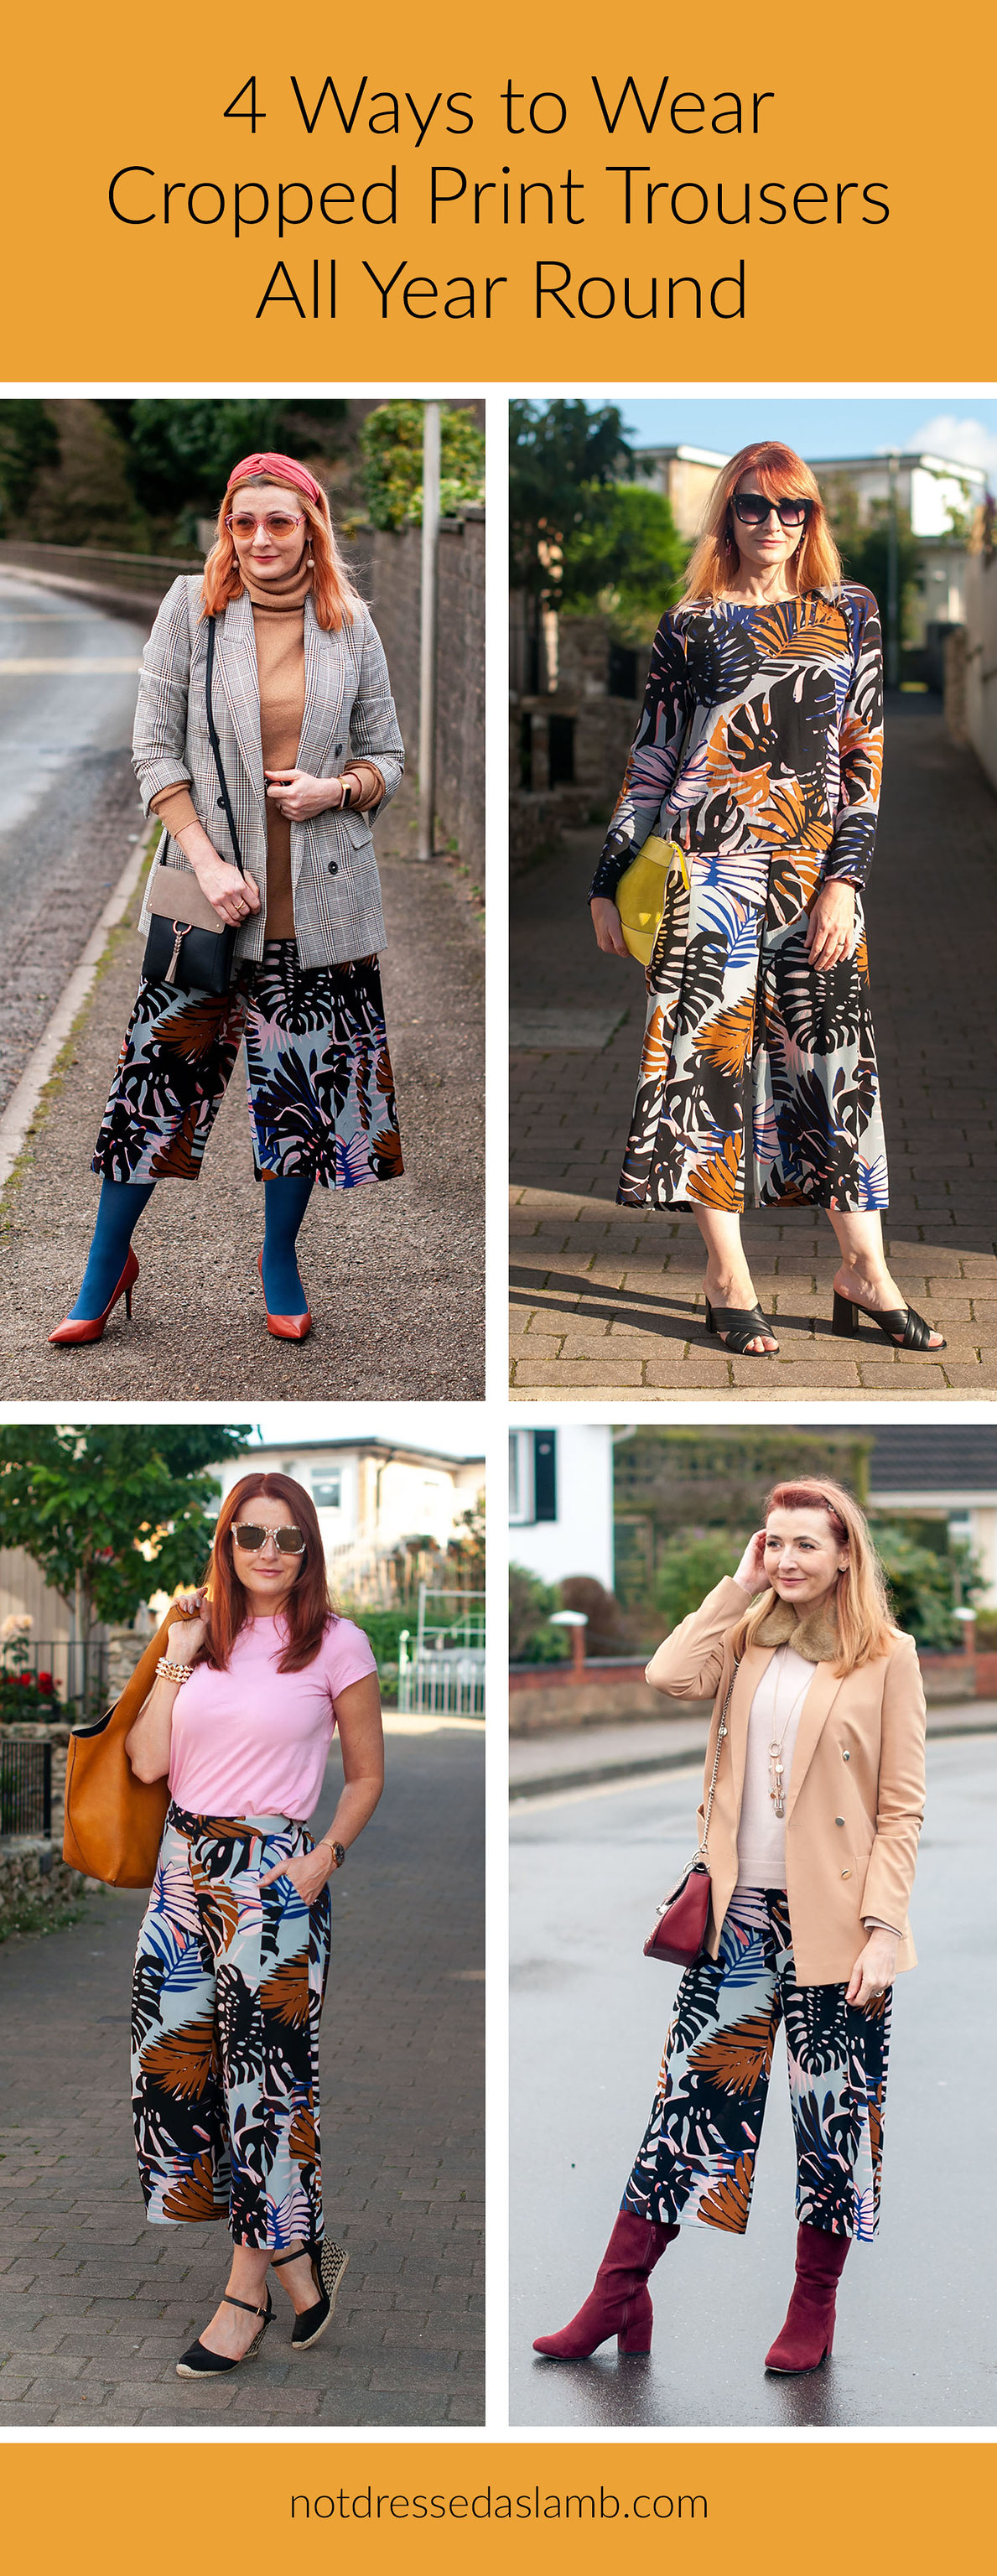 4 Ways to Wear Cropped, Palm Print Trousers | Not Dressed As Lamb, Style Over 40